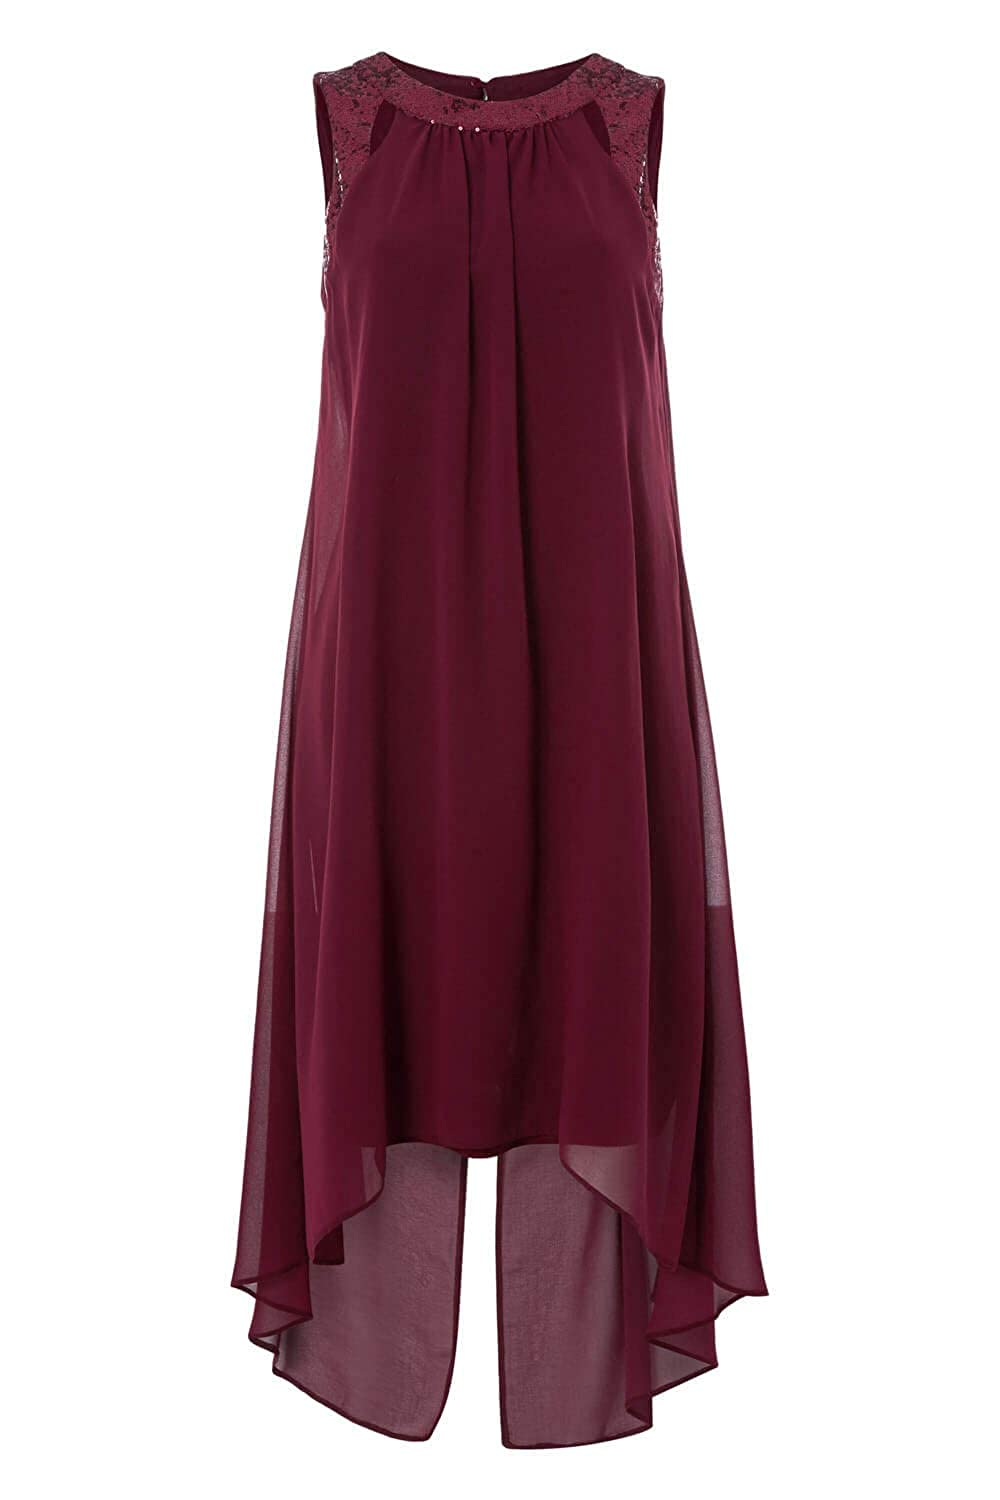 Roman Originals Women Cut Out Sequin Neck Floaty Dress Ladies A-Line Chiffon Embellished Sleeveless Party Wedding Guest Smart New Year Ascot Knee Length Shift Chic Dresses